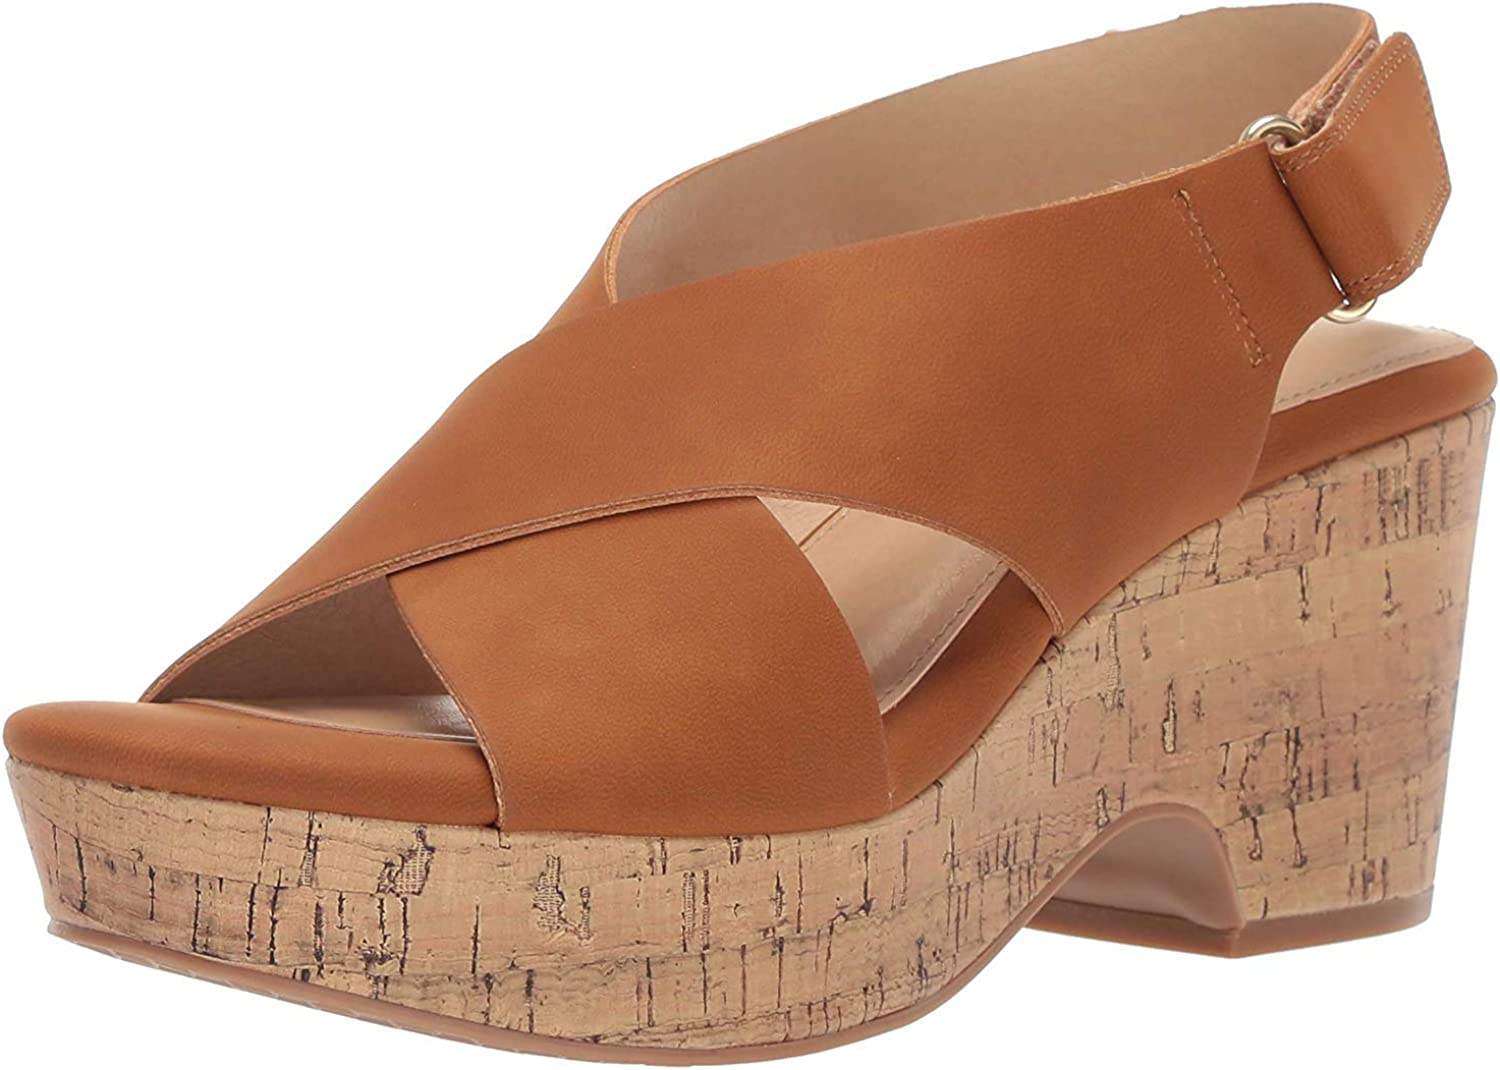 CL by Cheap mail order shopping Gifts Chinese Laundry Women's Chosen Wedge Sandal